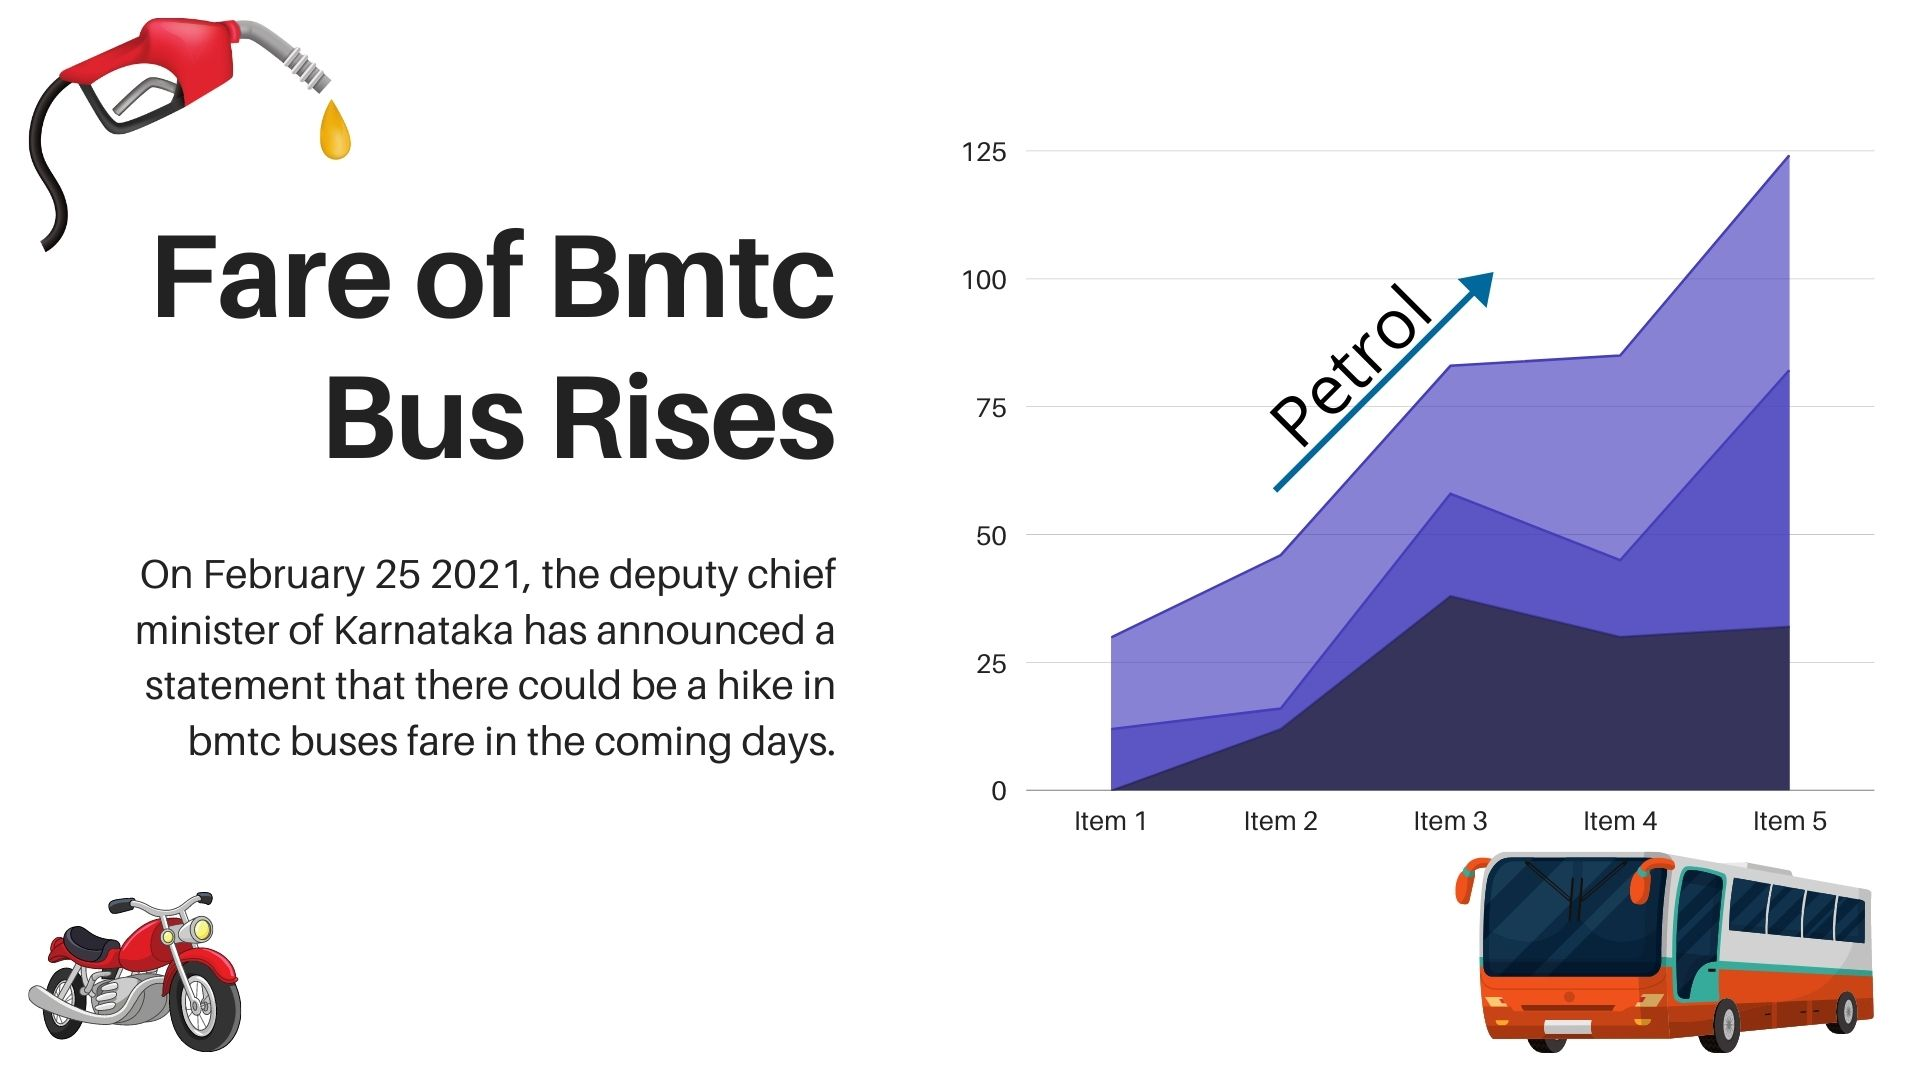 Fare of Bmtc bus rises